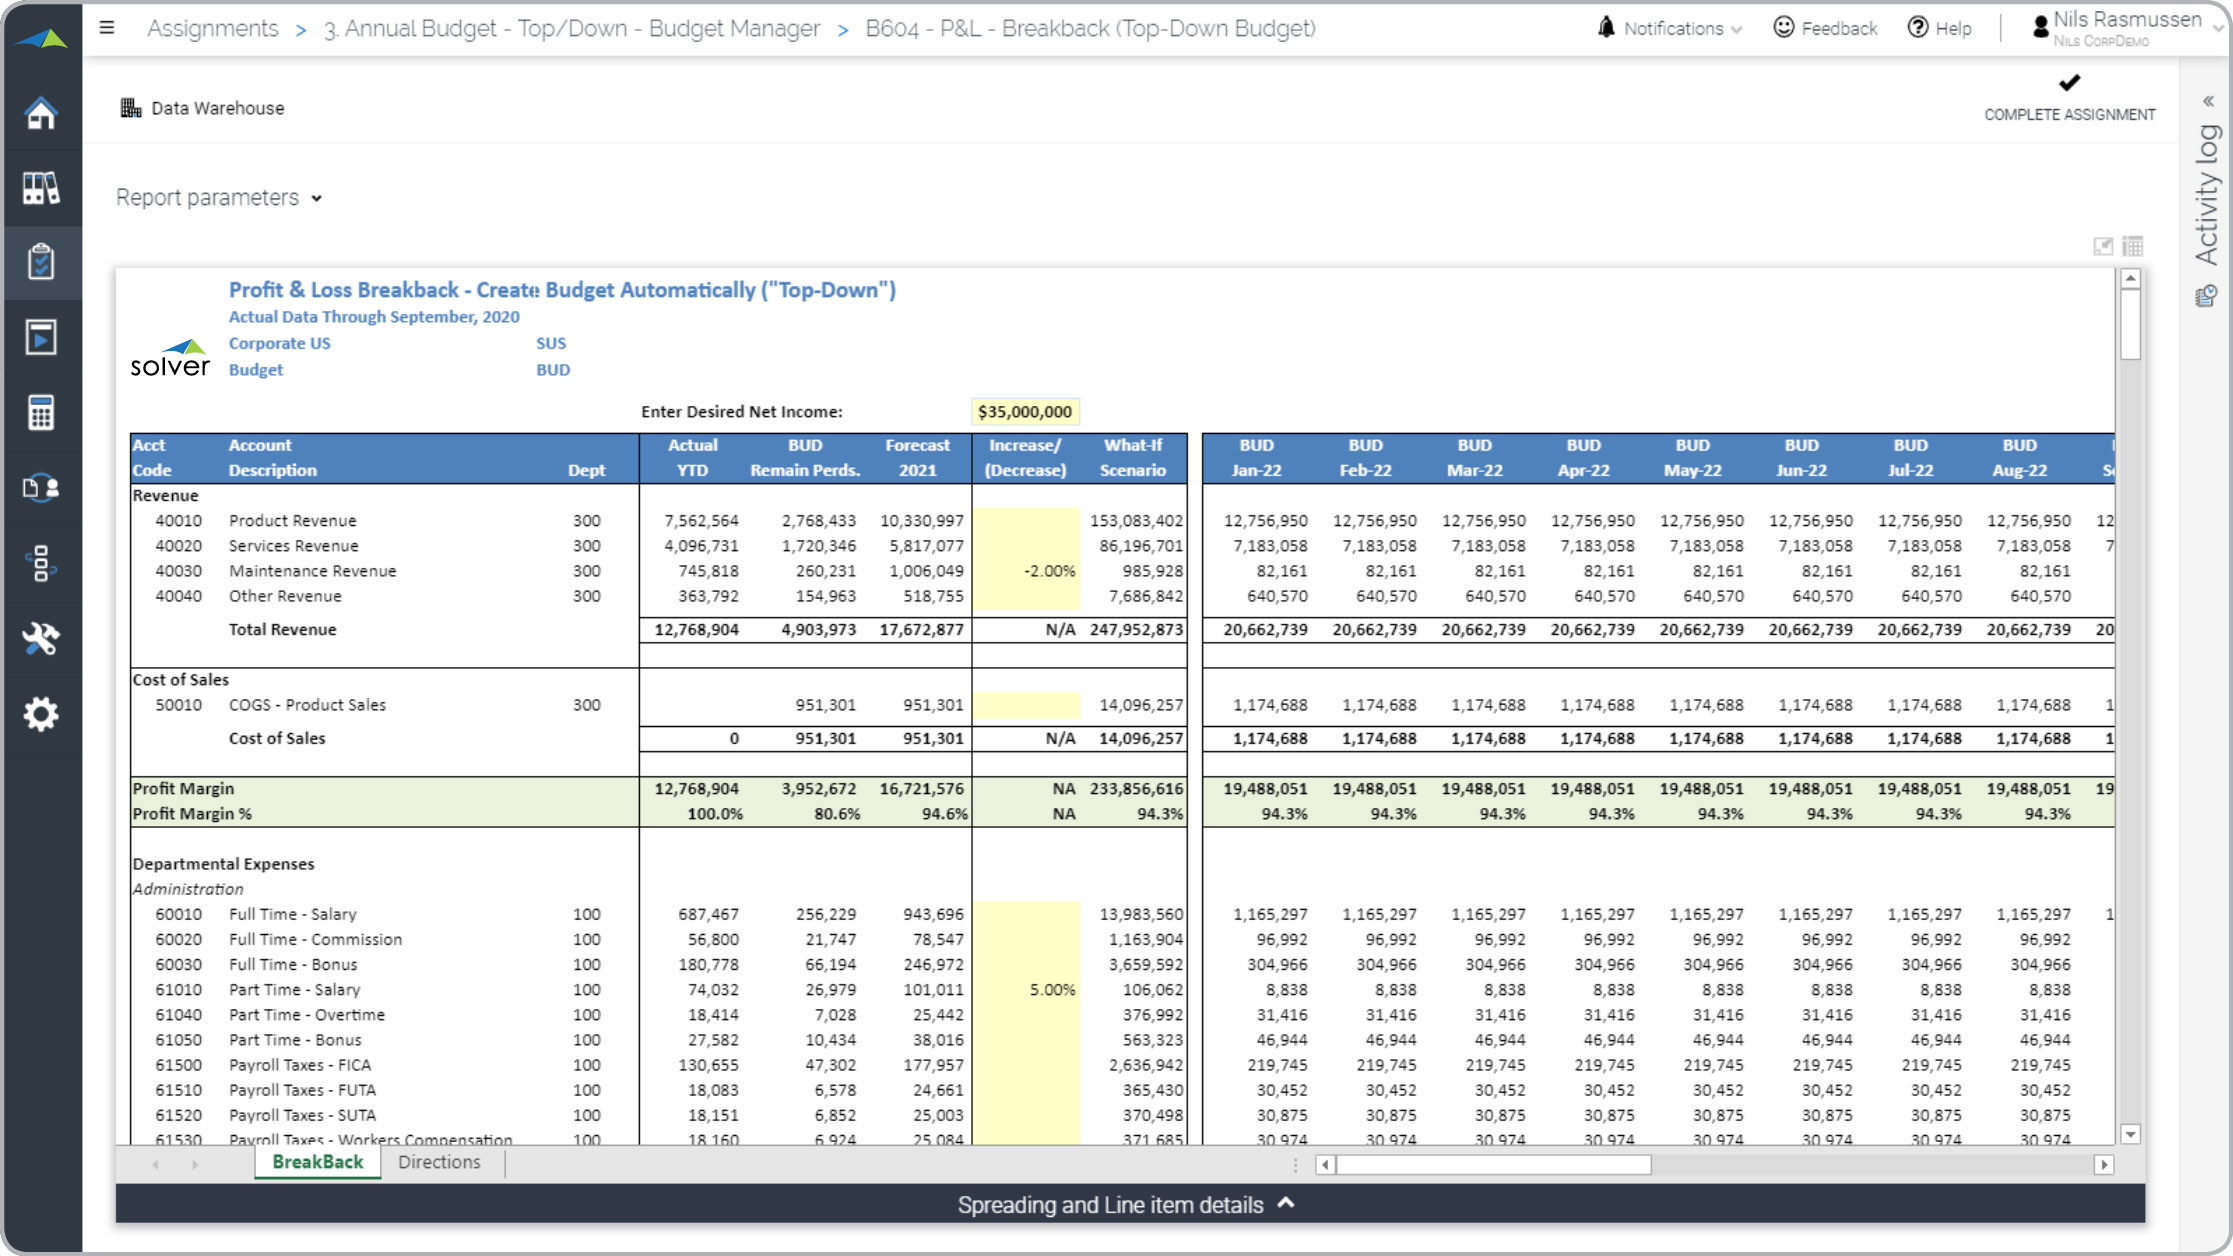 Top-down Profit & Loss Budget Form